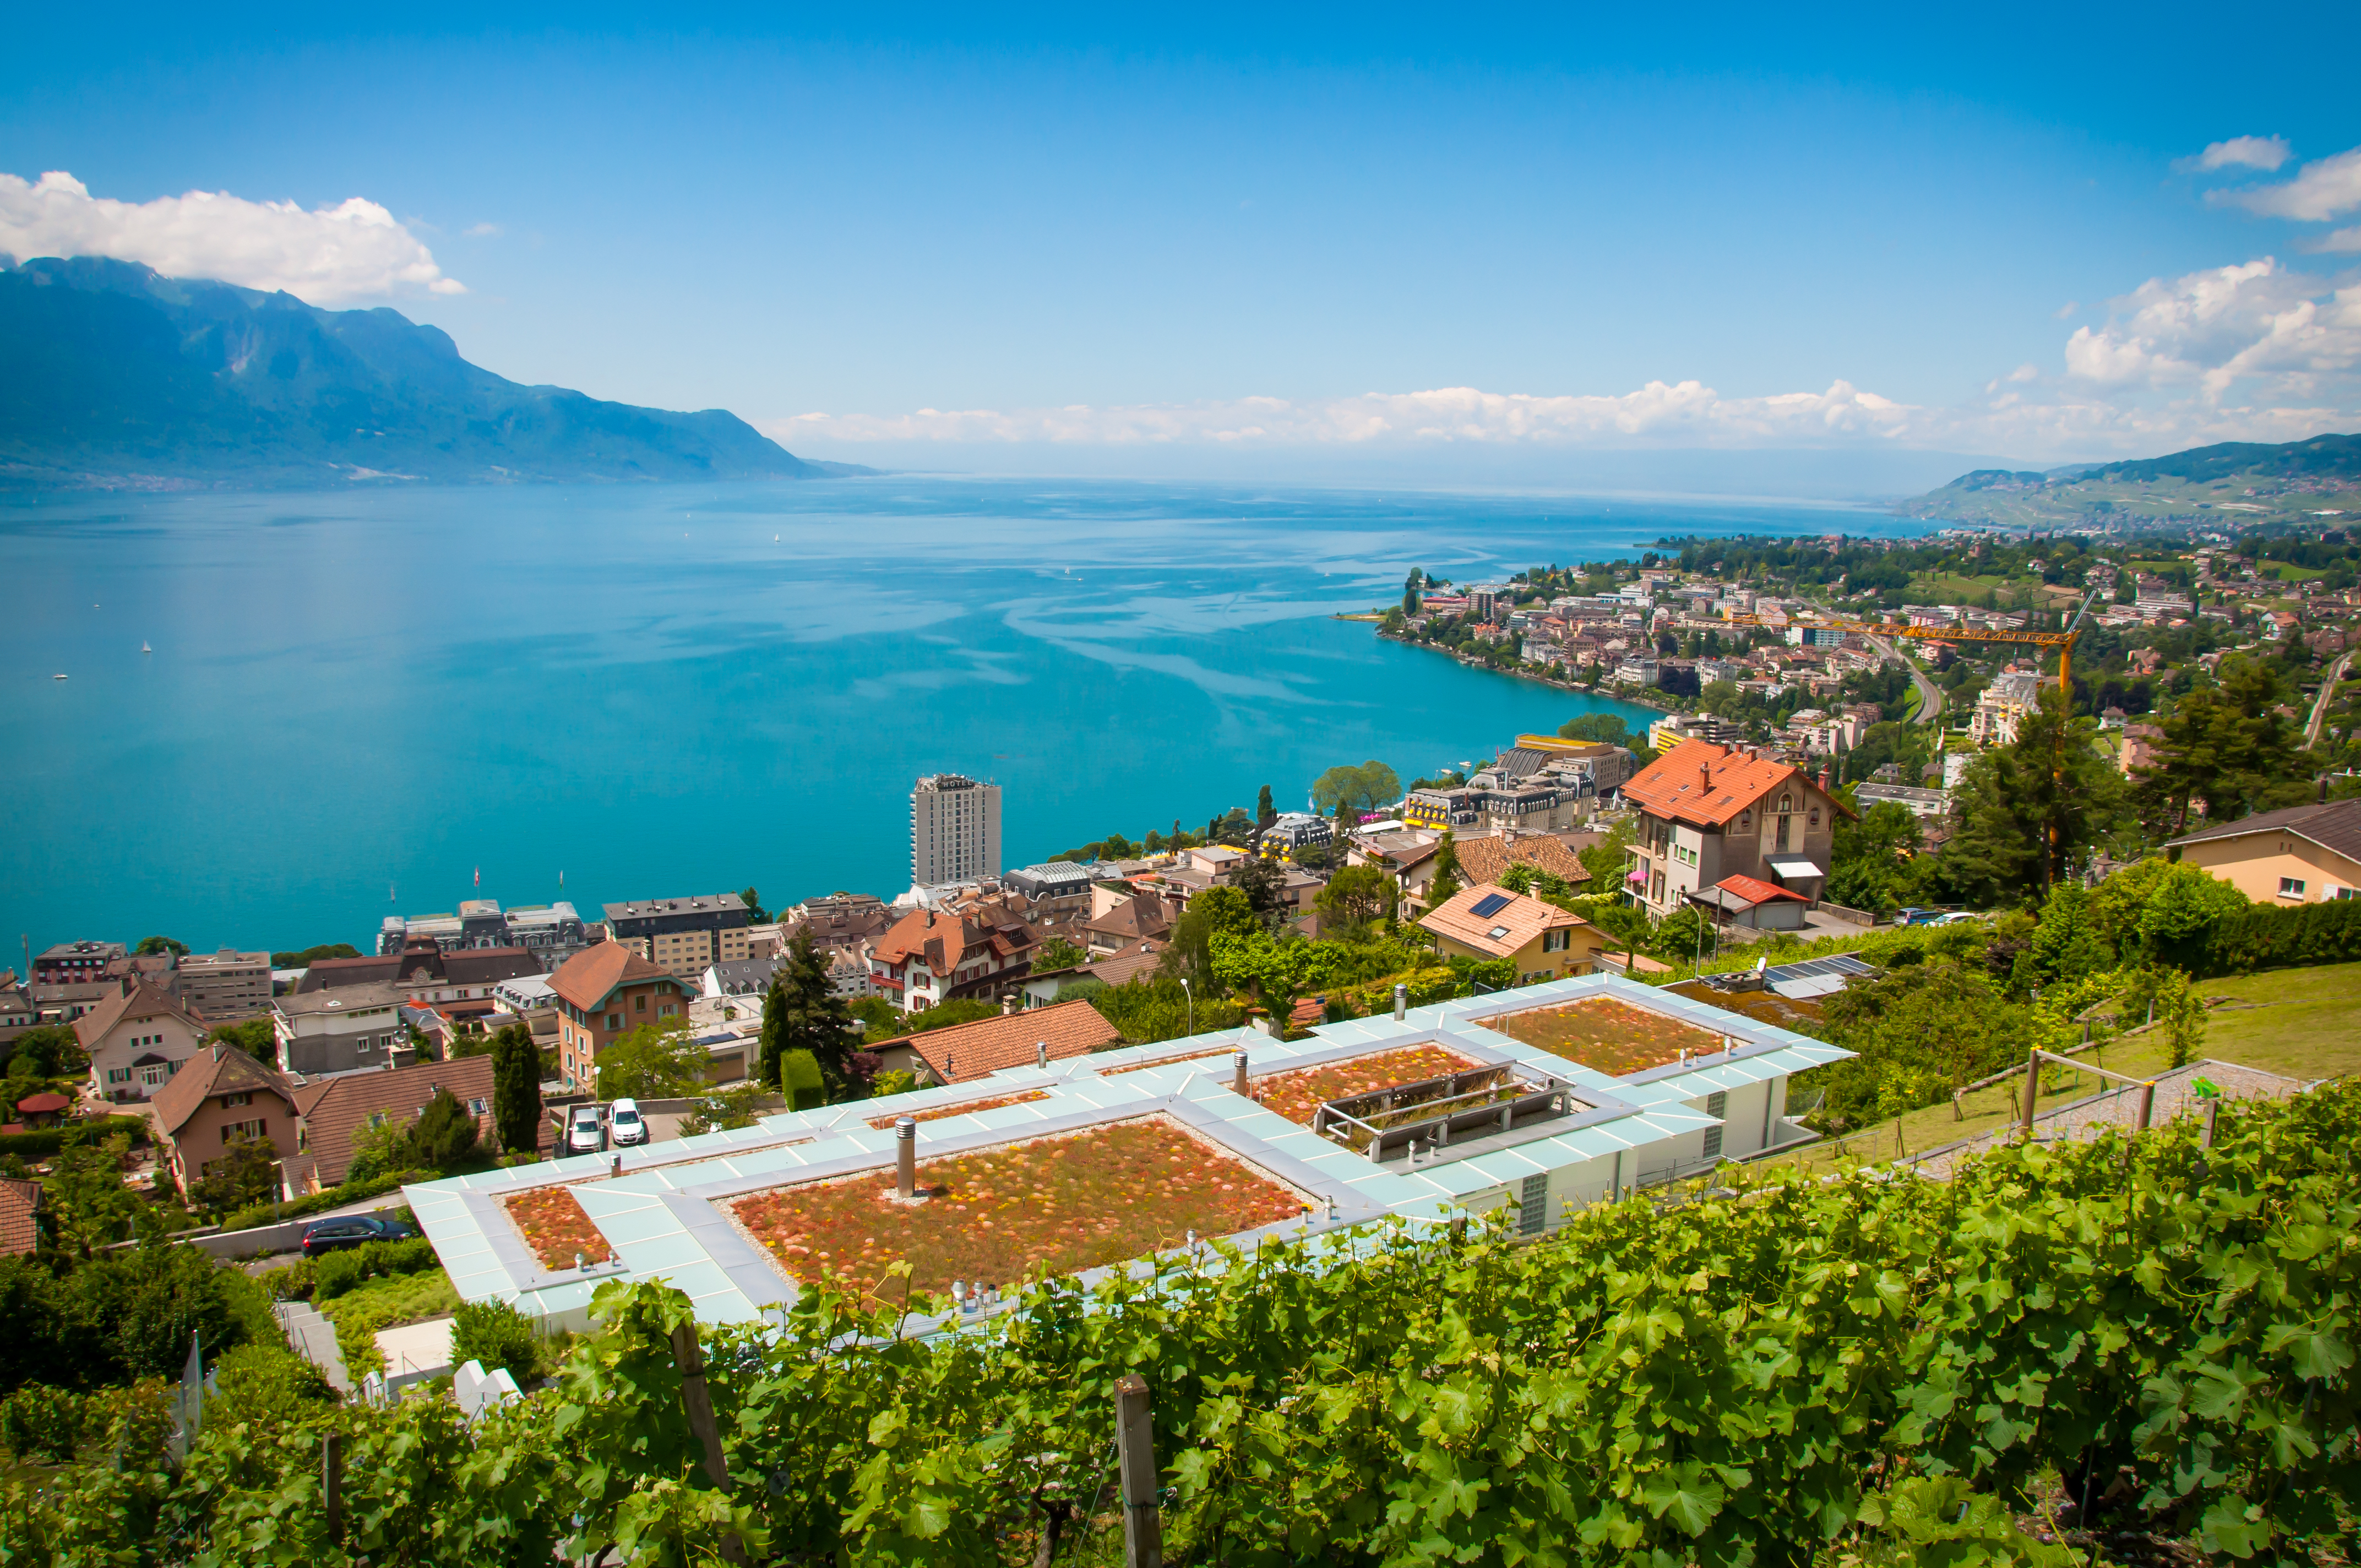 Montreux Switzerland  city pictures gallery : View of Montreux, Switzerland Computer Wallpapers, Desktop Backgrounds ...